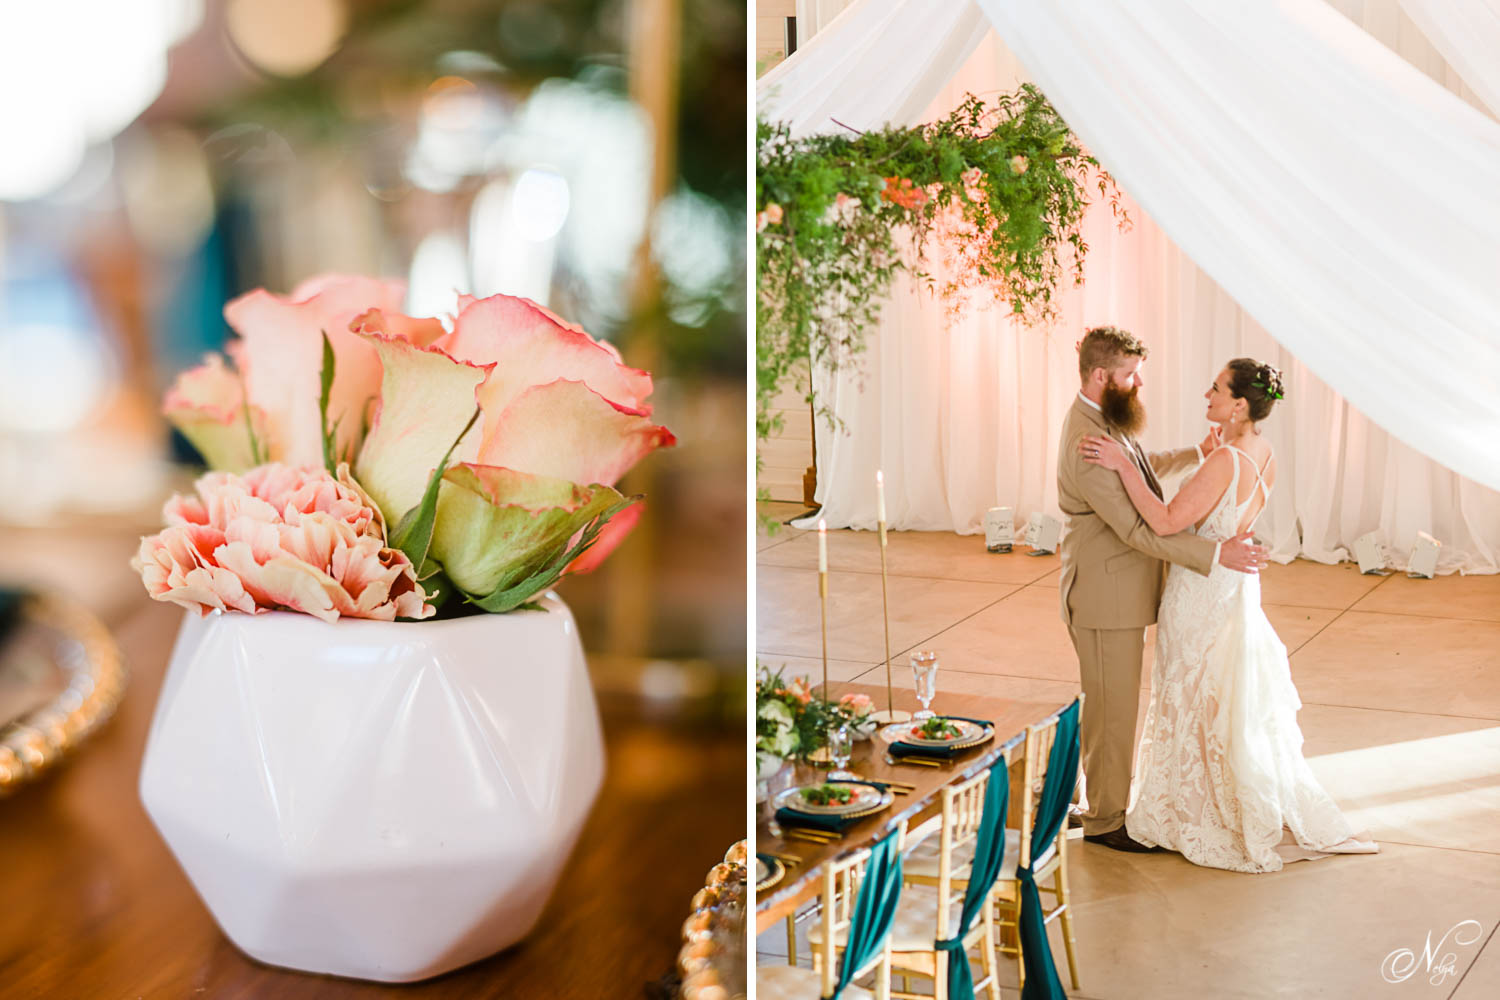 roses in a bowl and bride and groom's first dance under white draping and hanging greenery at Hiwassee river weddings